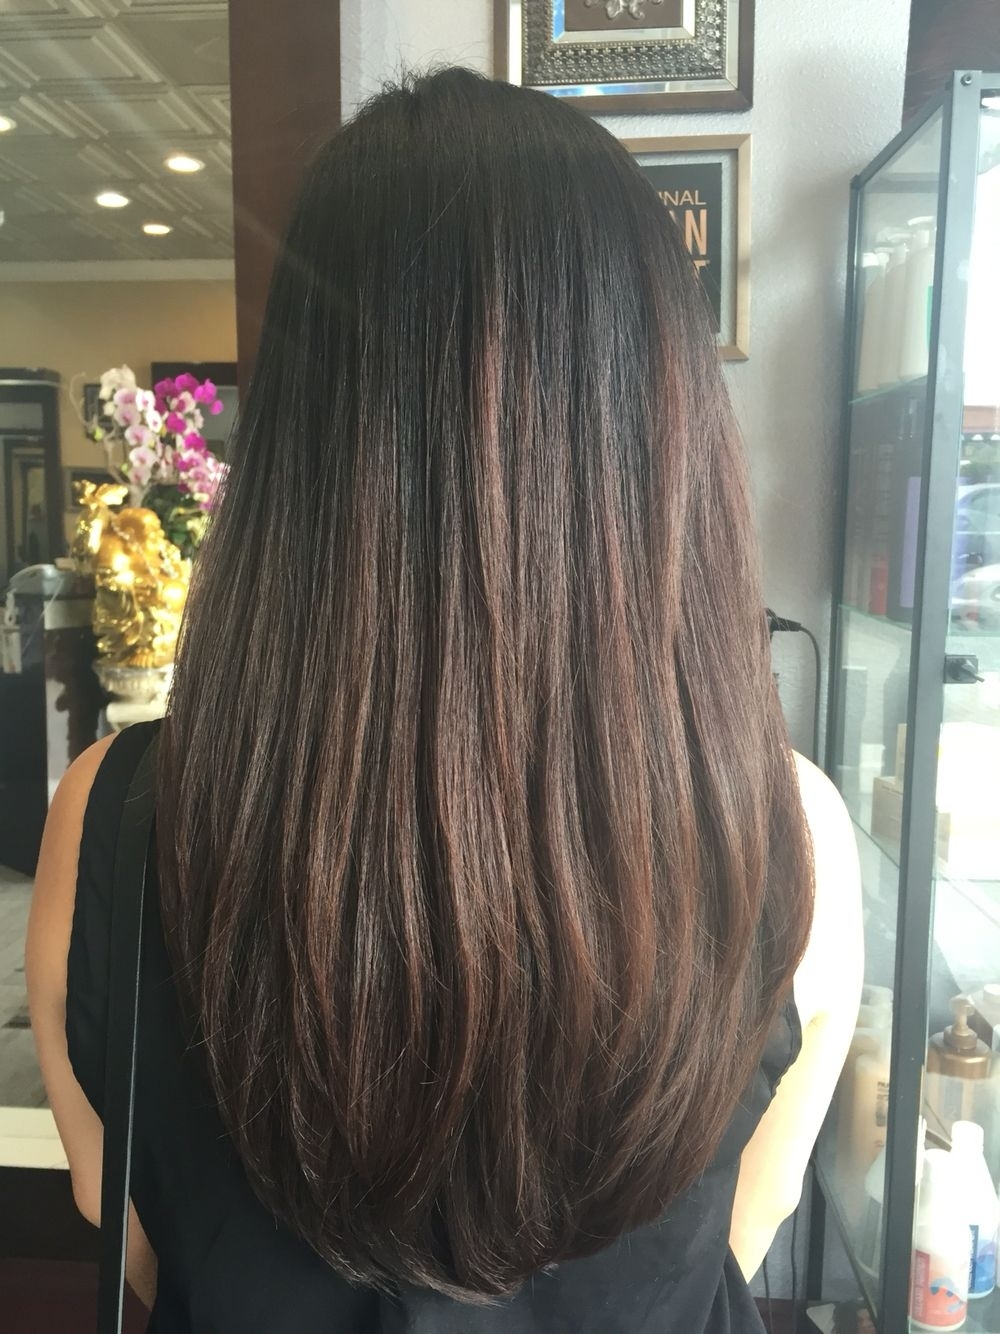 Long Layered Hair With U Shape My Stuff Pinterest | Hair Styles with U Shaped Haircut For Thick Hair